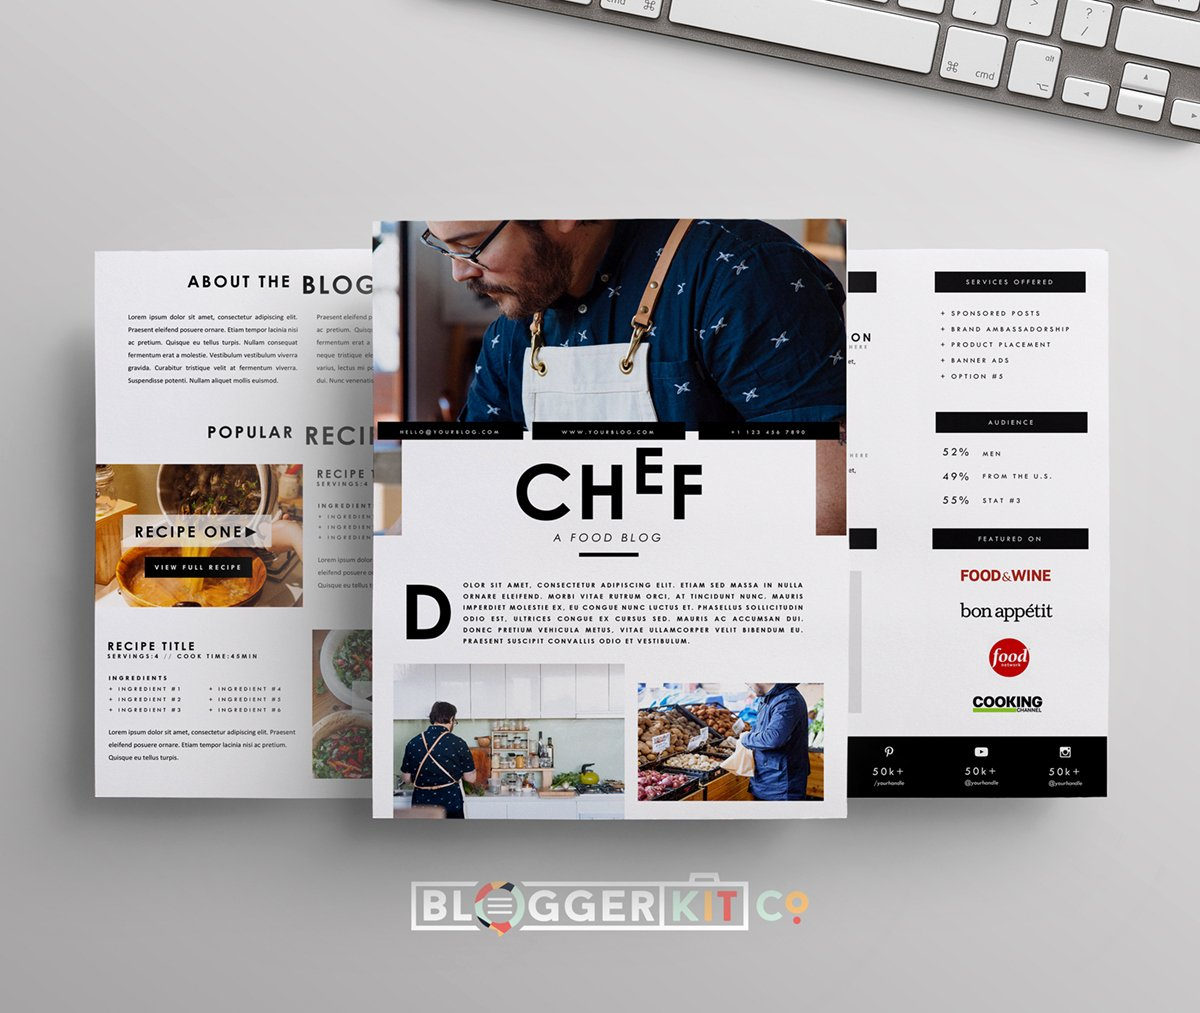 Blogger Media Kit Template Unique Chef Media Kit Template for Food Bloggers